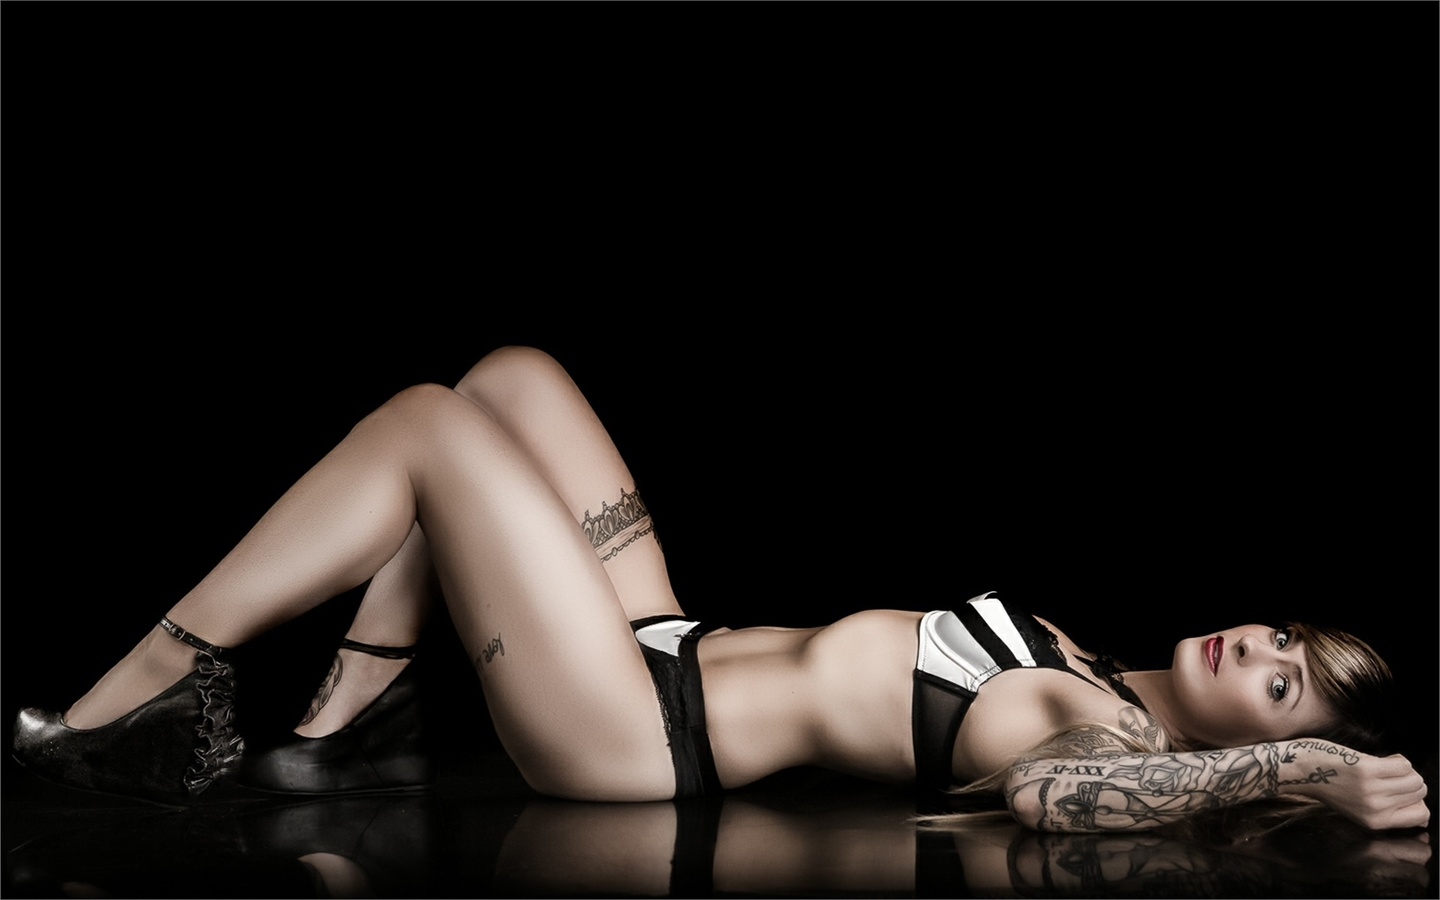 tattoo, shoes, arm, legs, body, girl, model, beauty, sexy